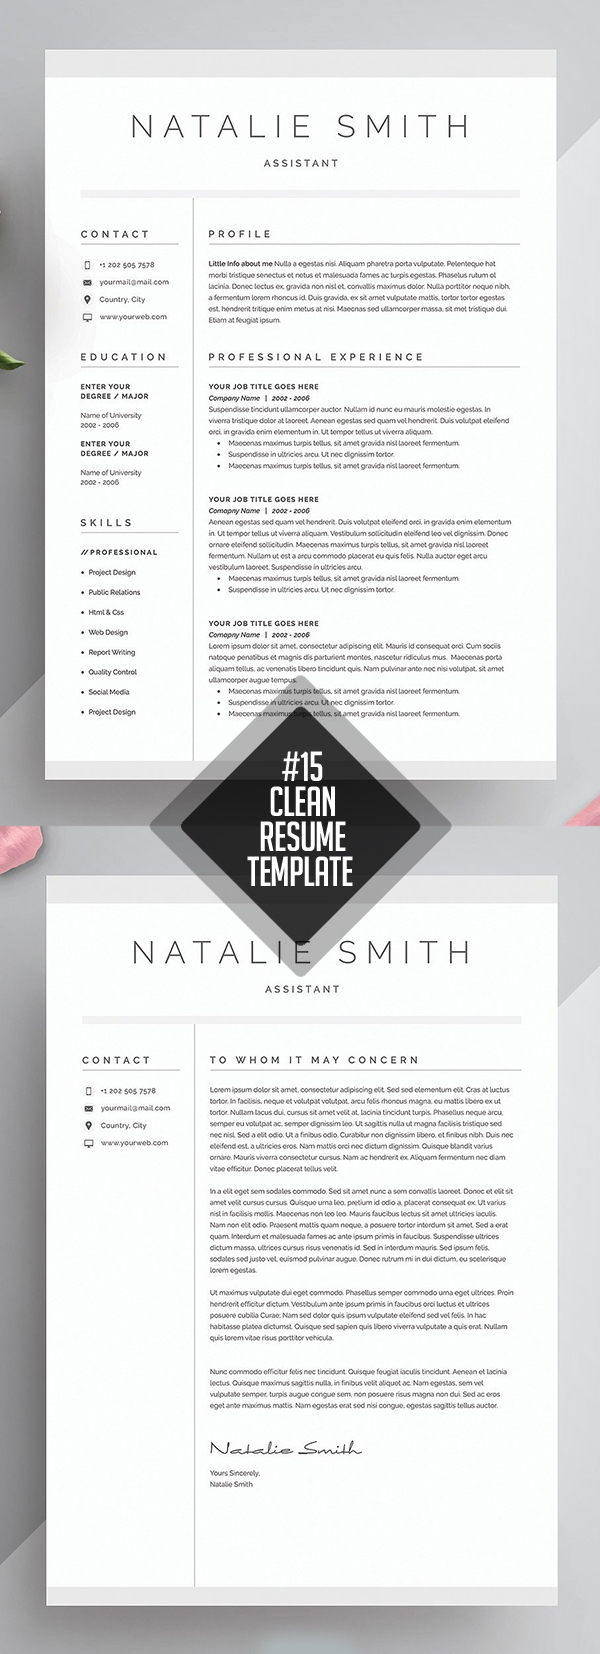 Creative Resume & Cover Letter Template